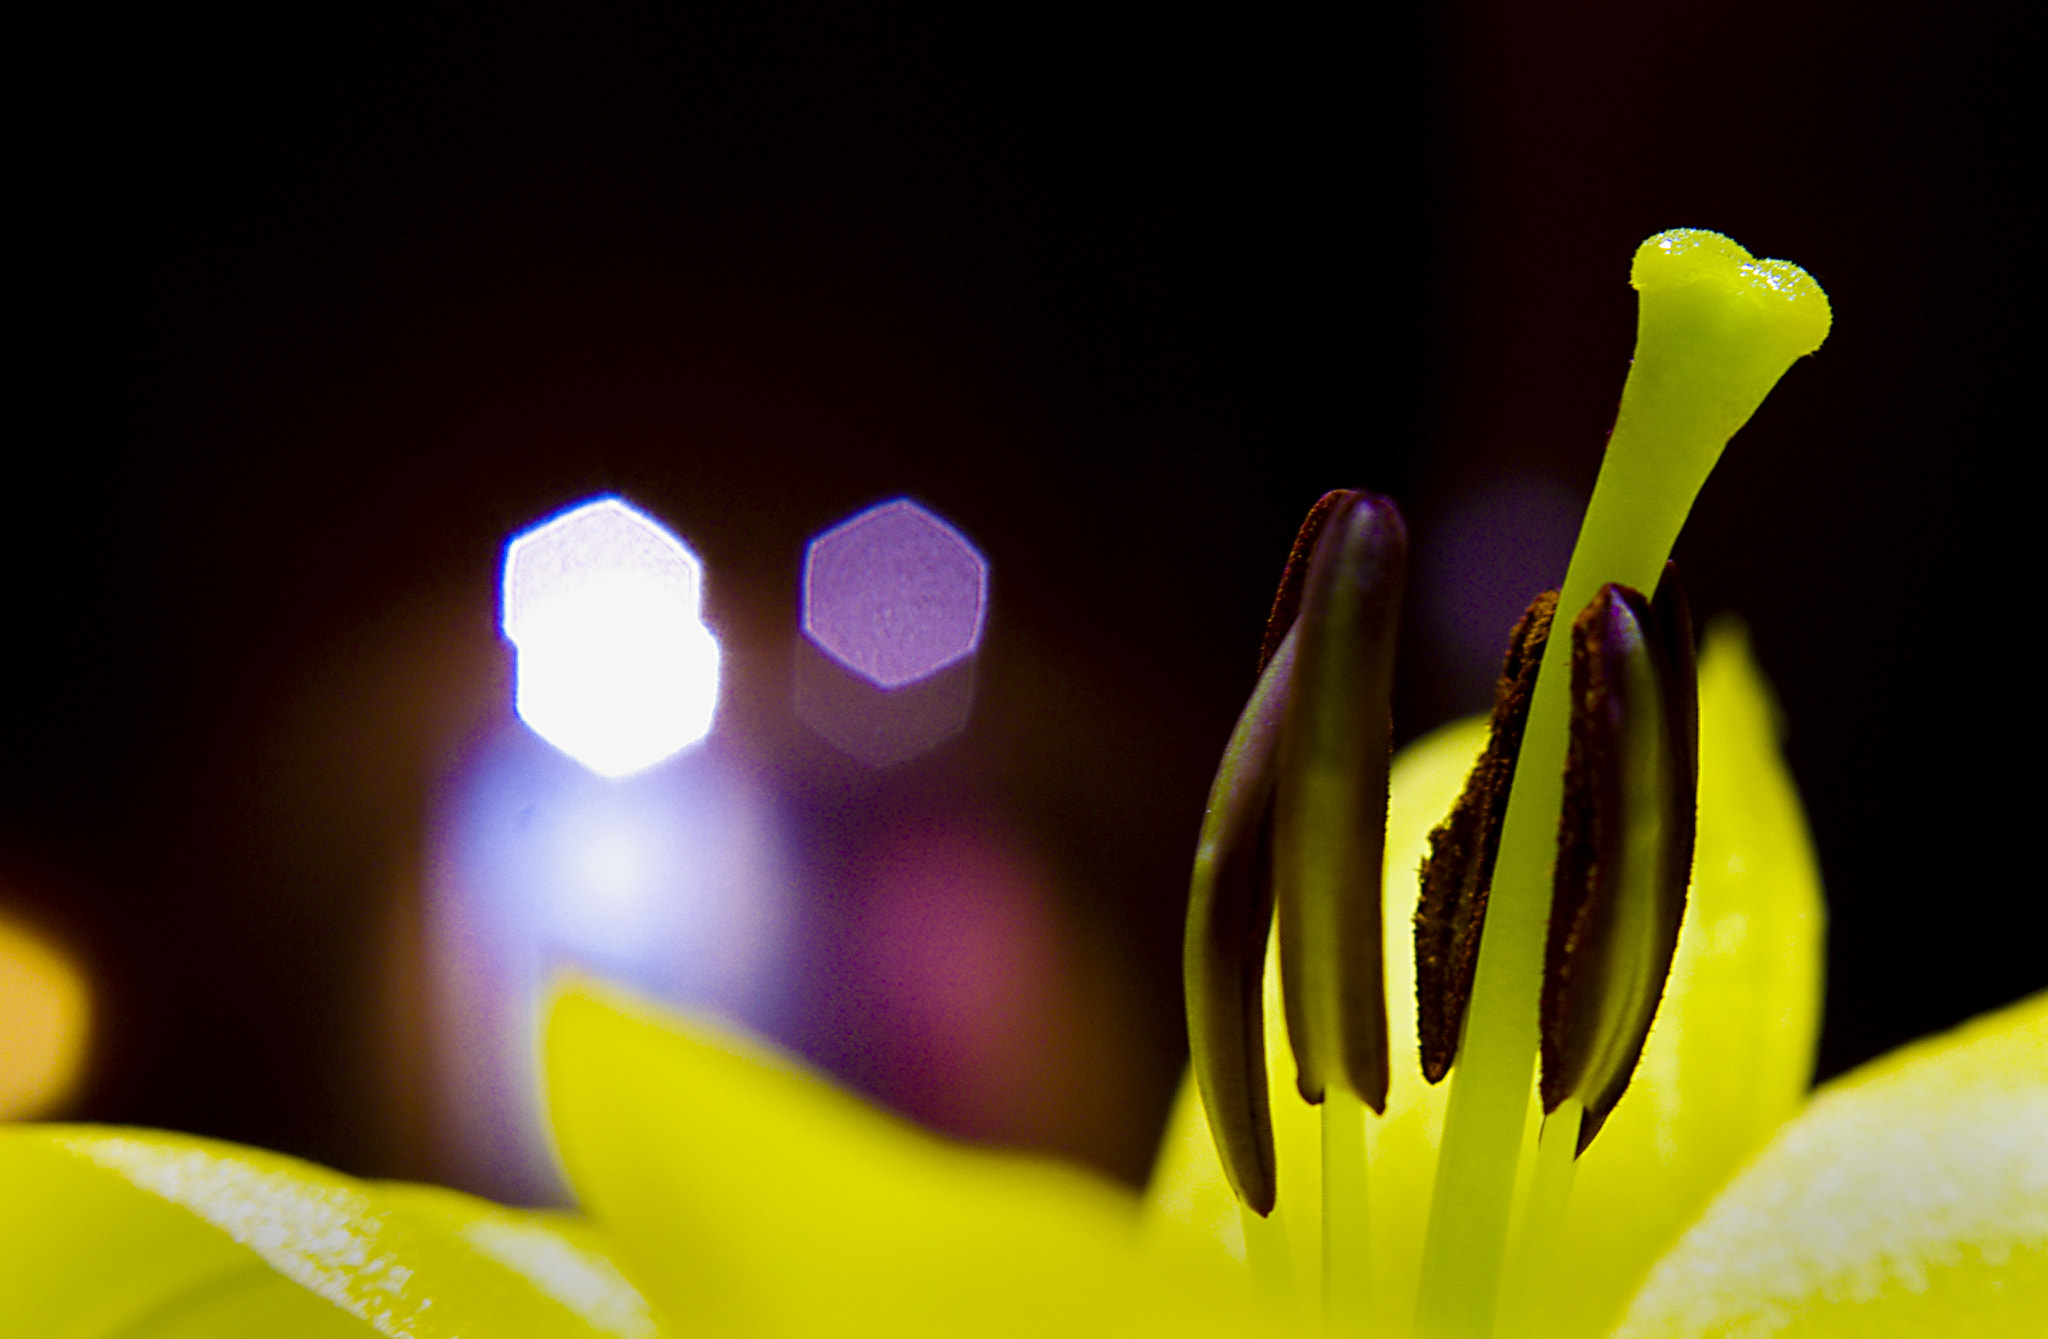 Photograph Flower Bokeh by TL PhotoWorks on 500px